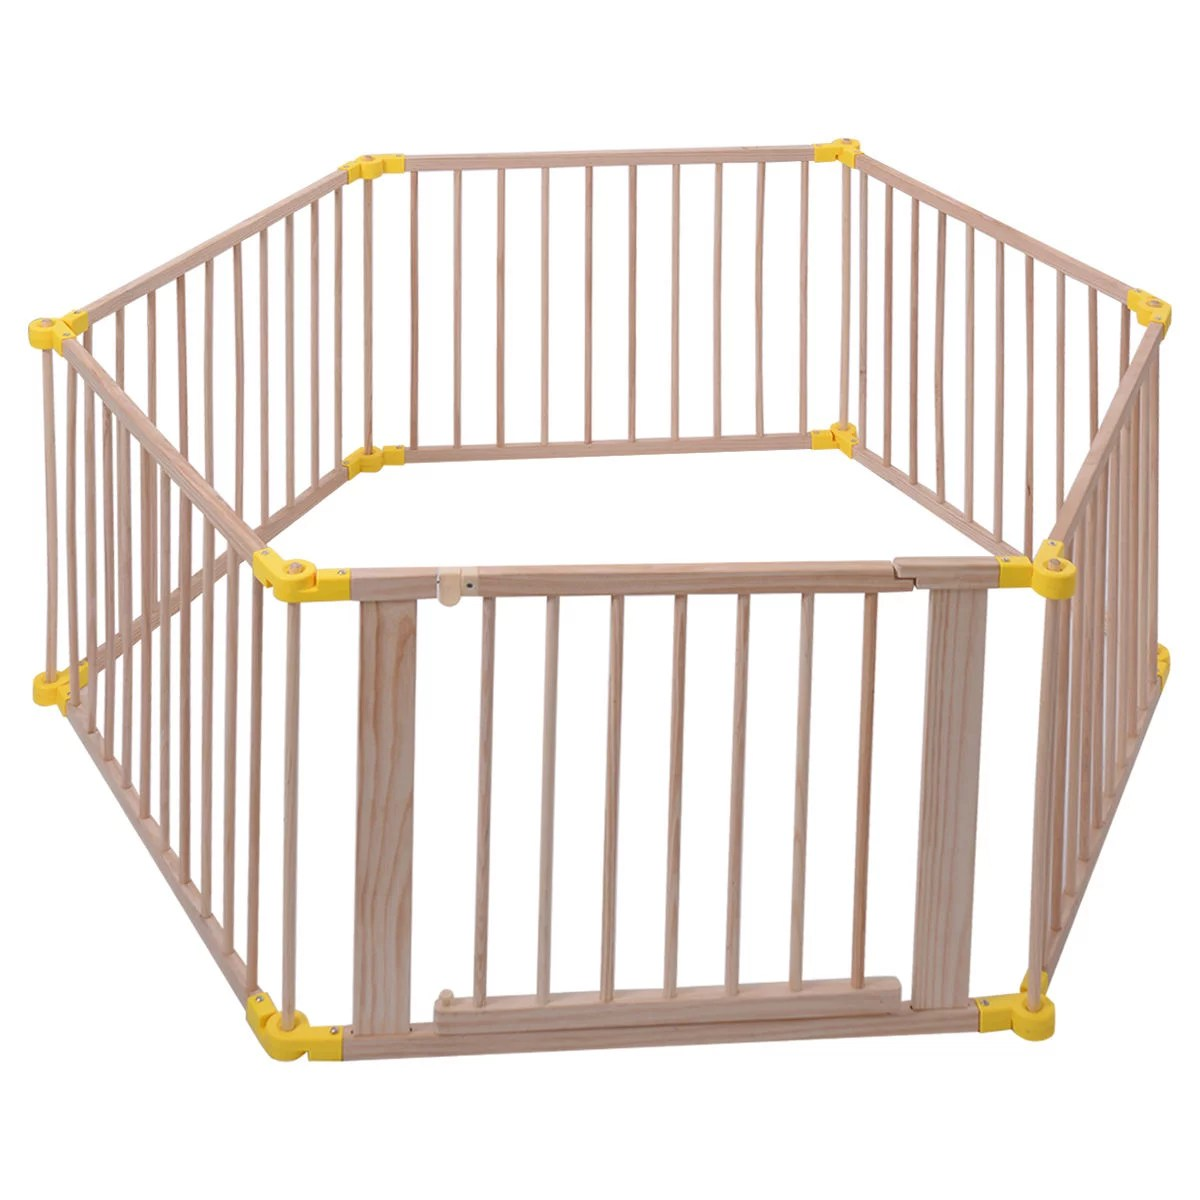 Baby Playpen How Foldable Baby Playpen 6 Panel Wooden Frame Kids Safety Play Fence